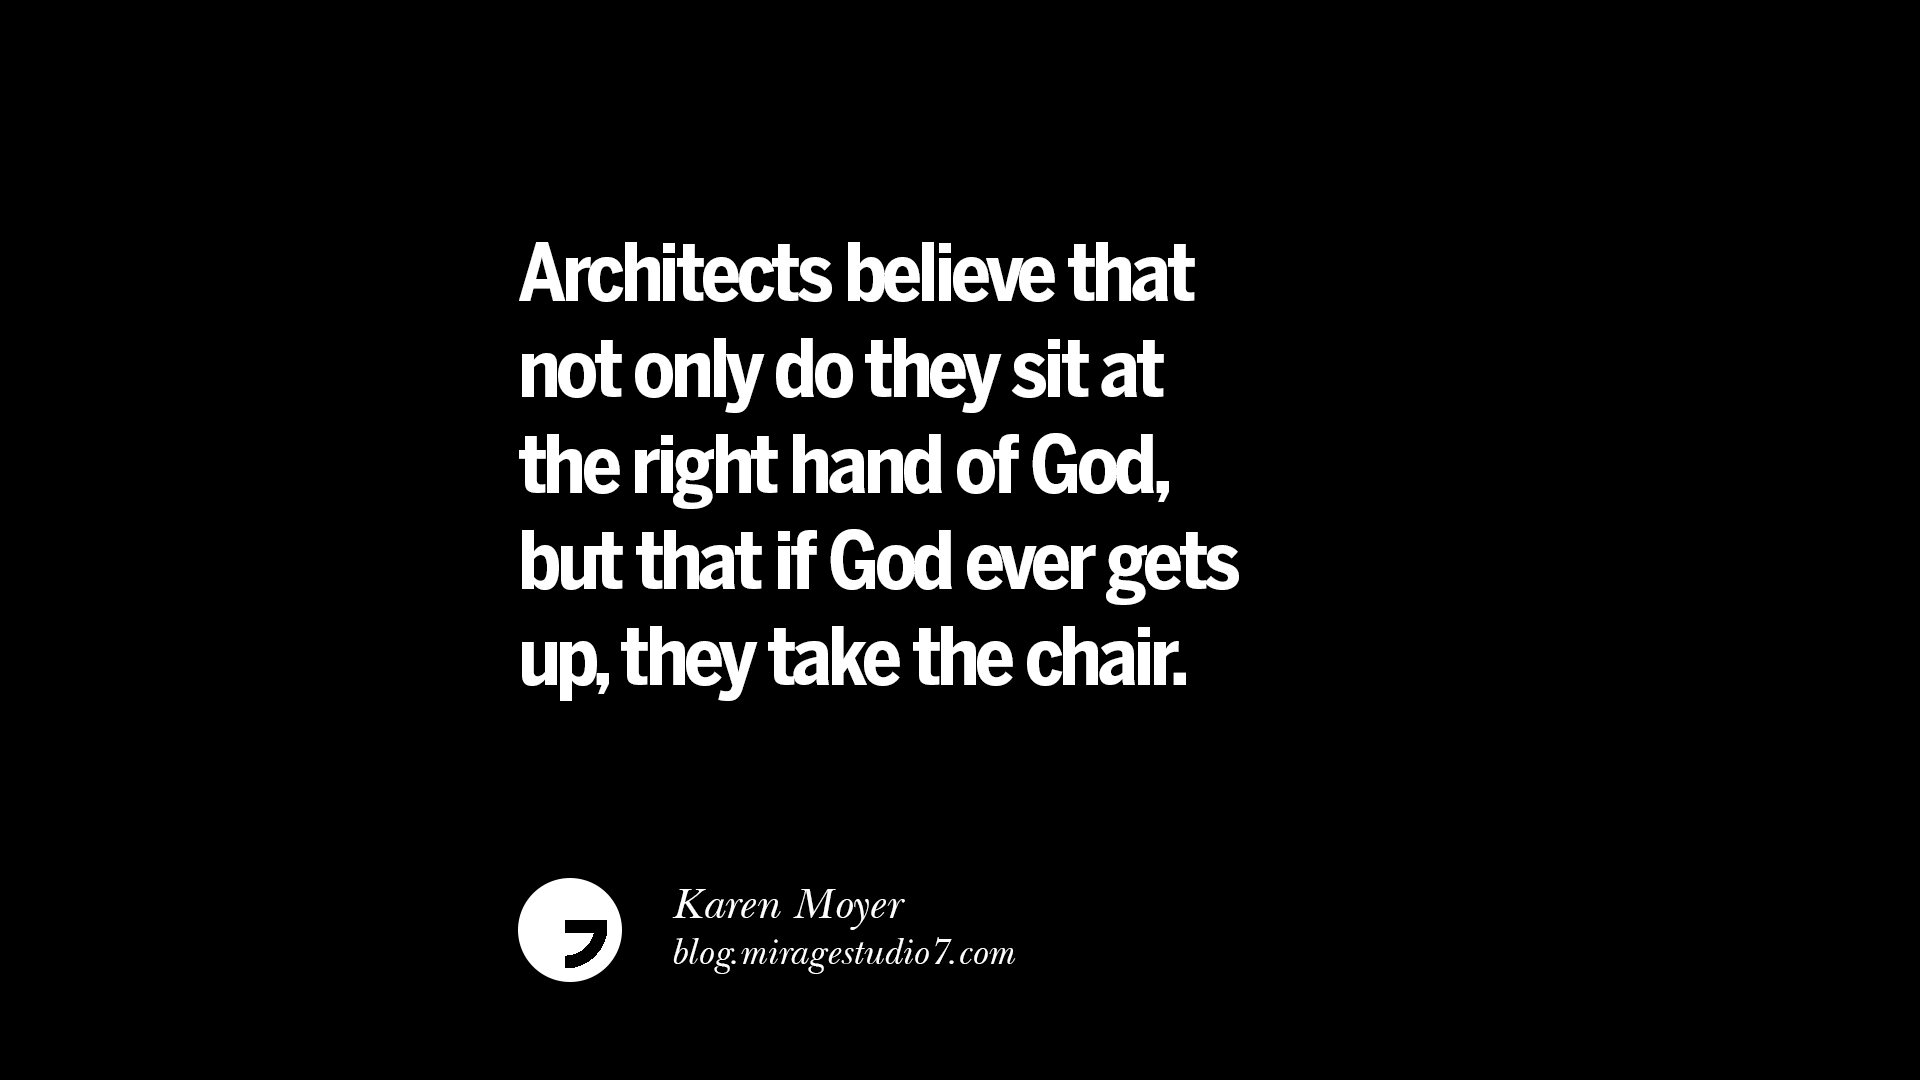 FUNNY ARCHITECTURE QUOTES SAYINGS image quotes at ...